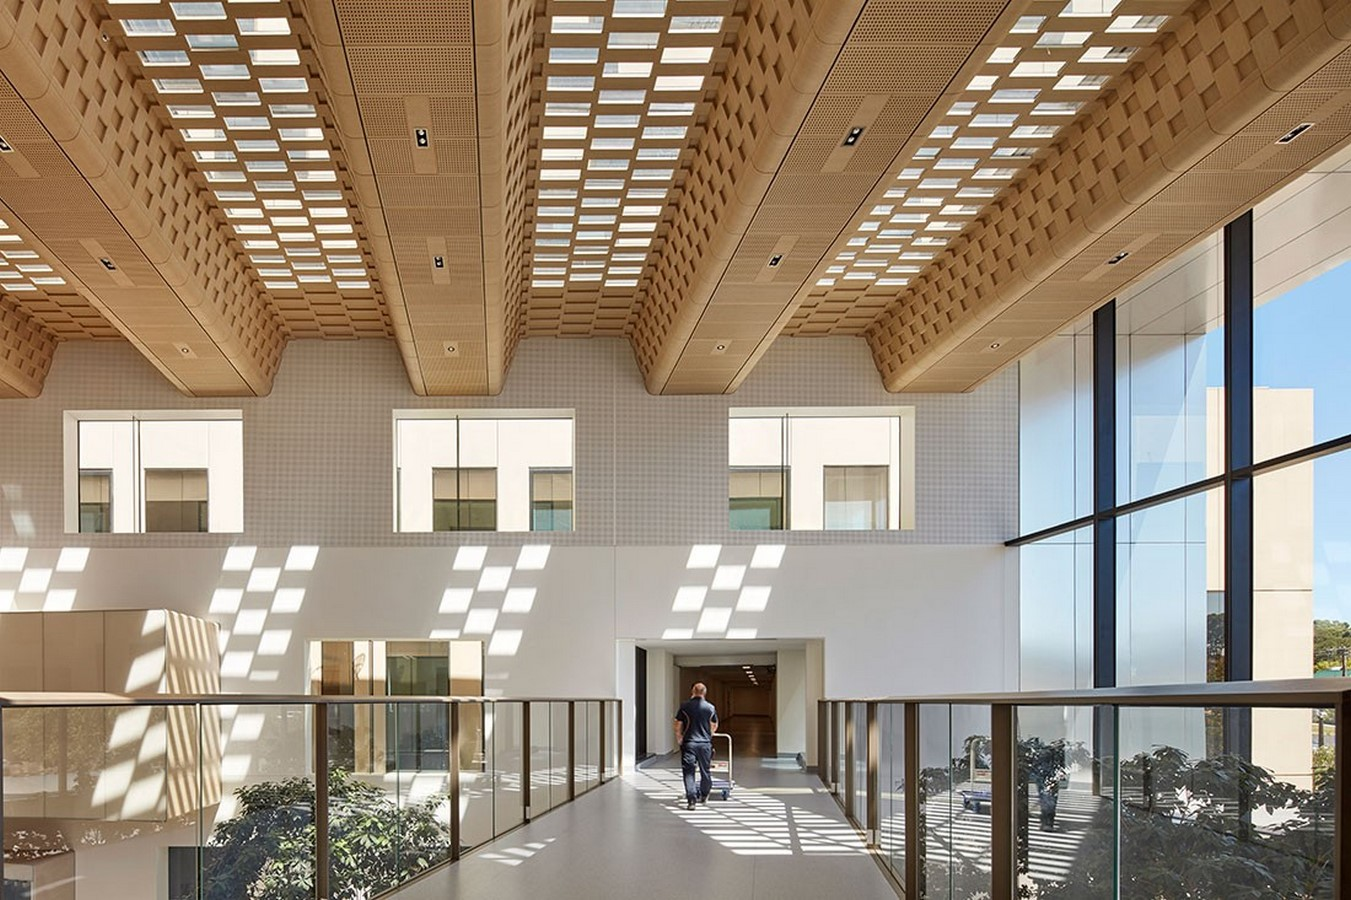 10 Benefits of natural light in architecture - Sheet12